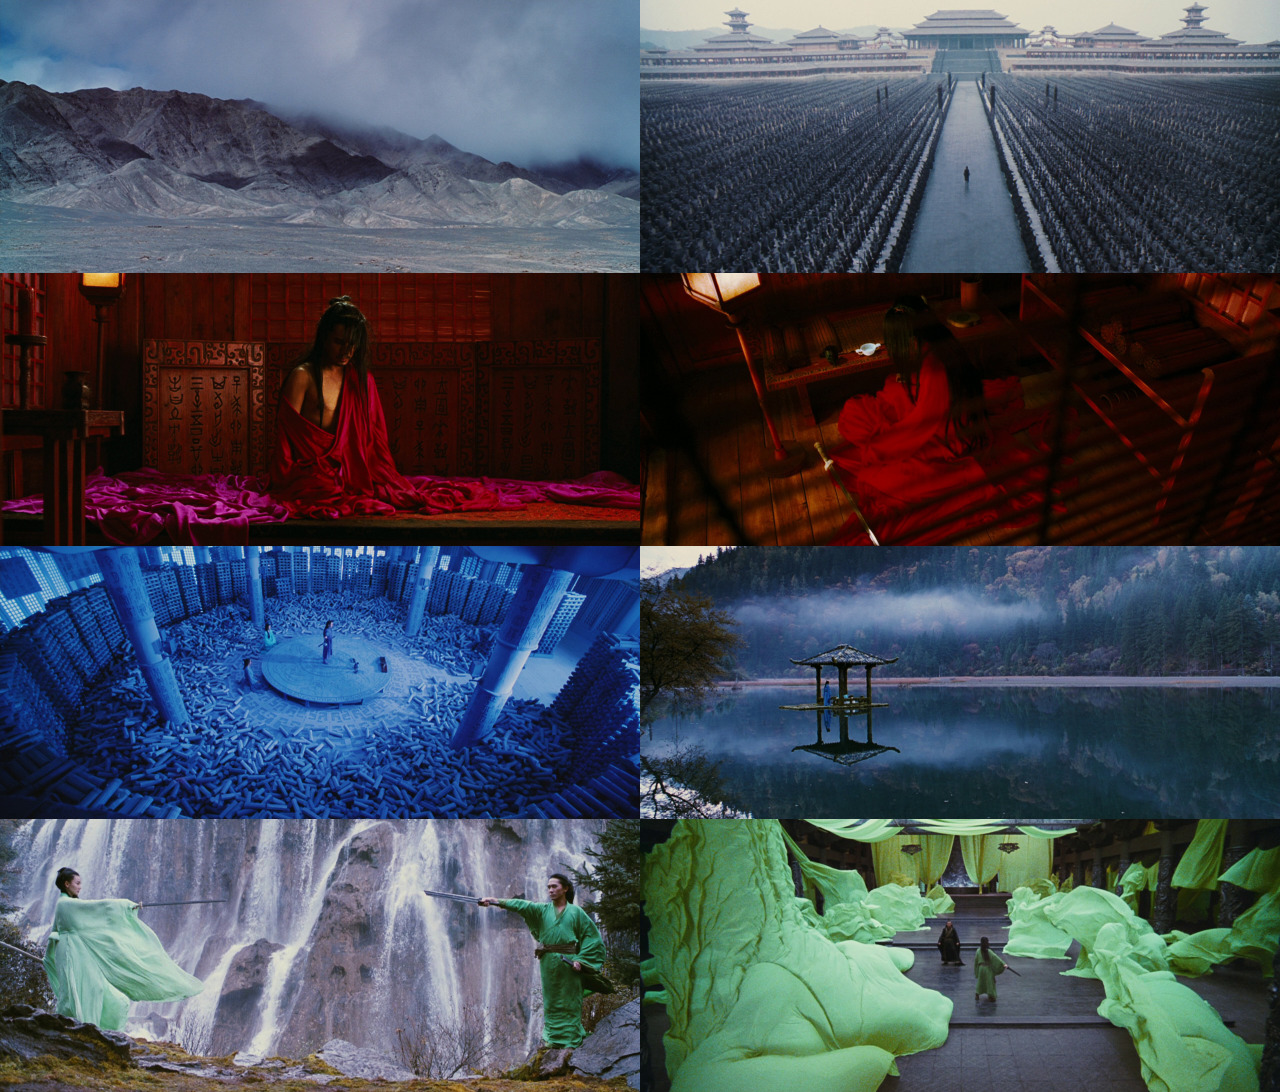 This film was pretty awful but the implementation of colour was interesting at least. Hero, Zhang Yimou (2002)